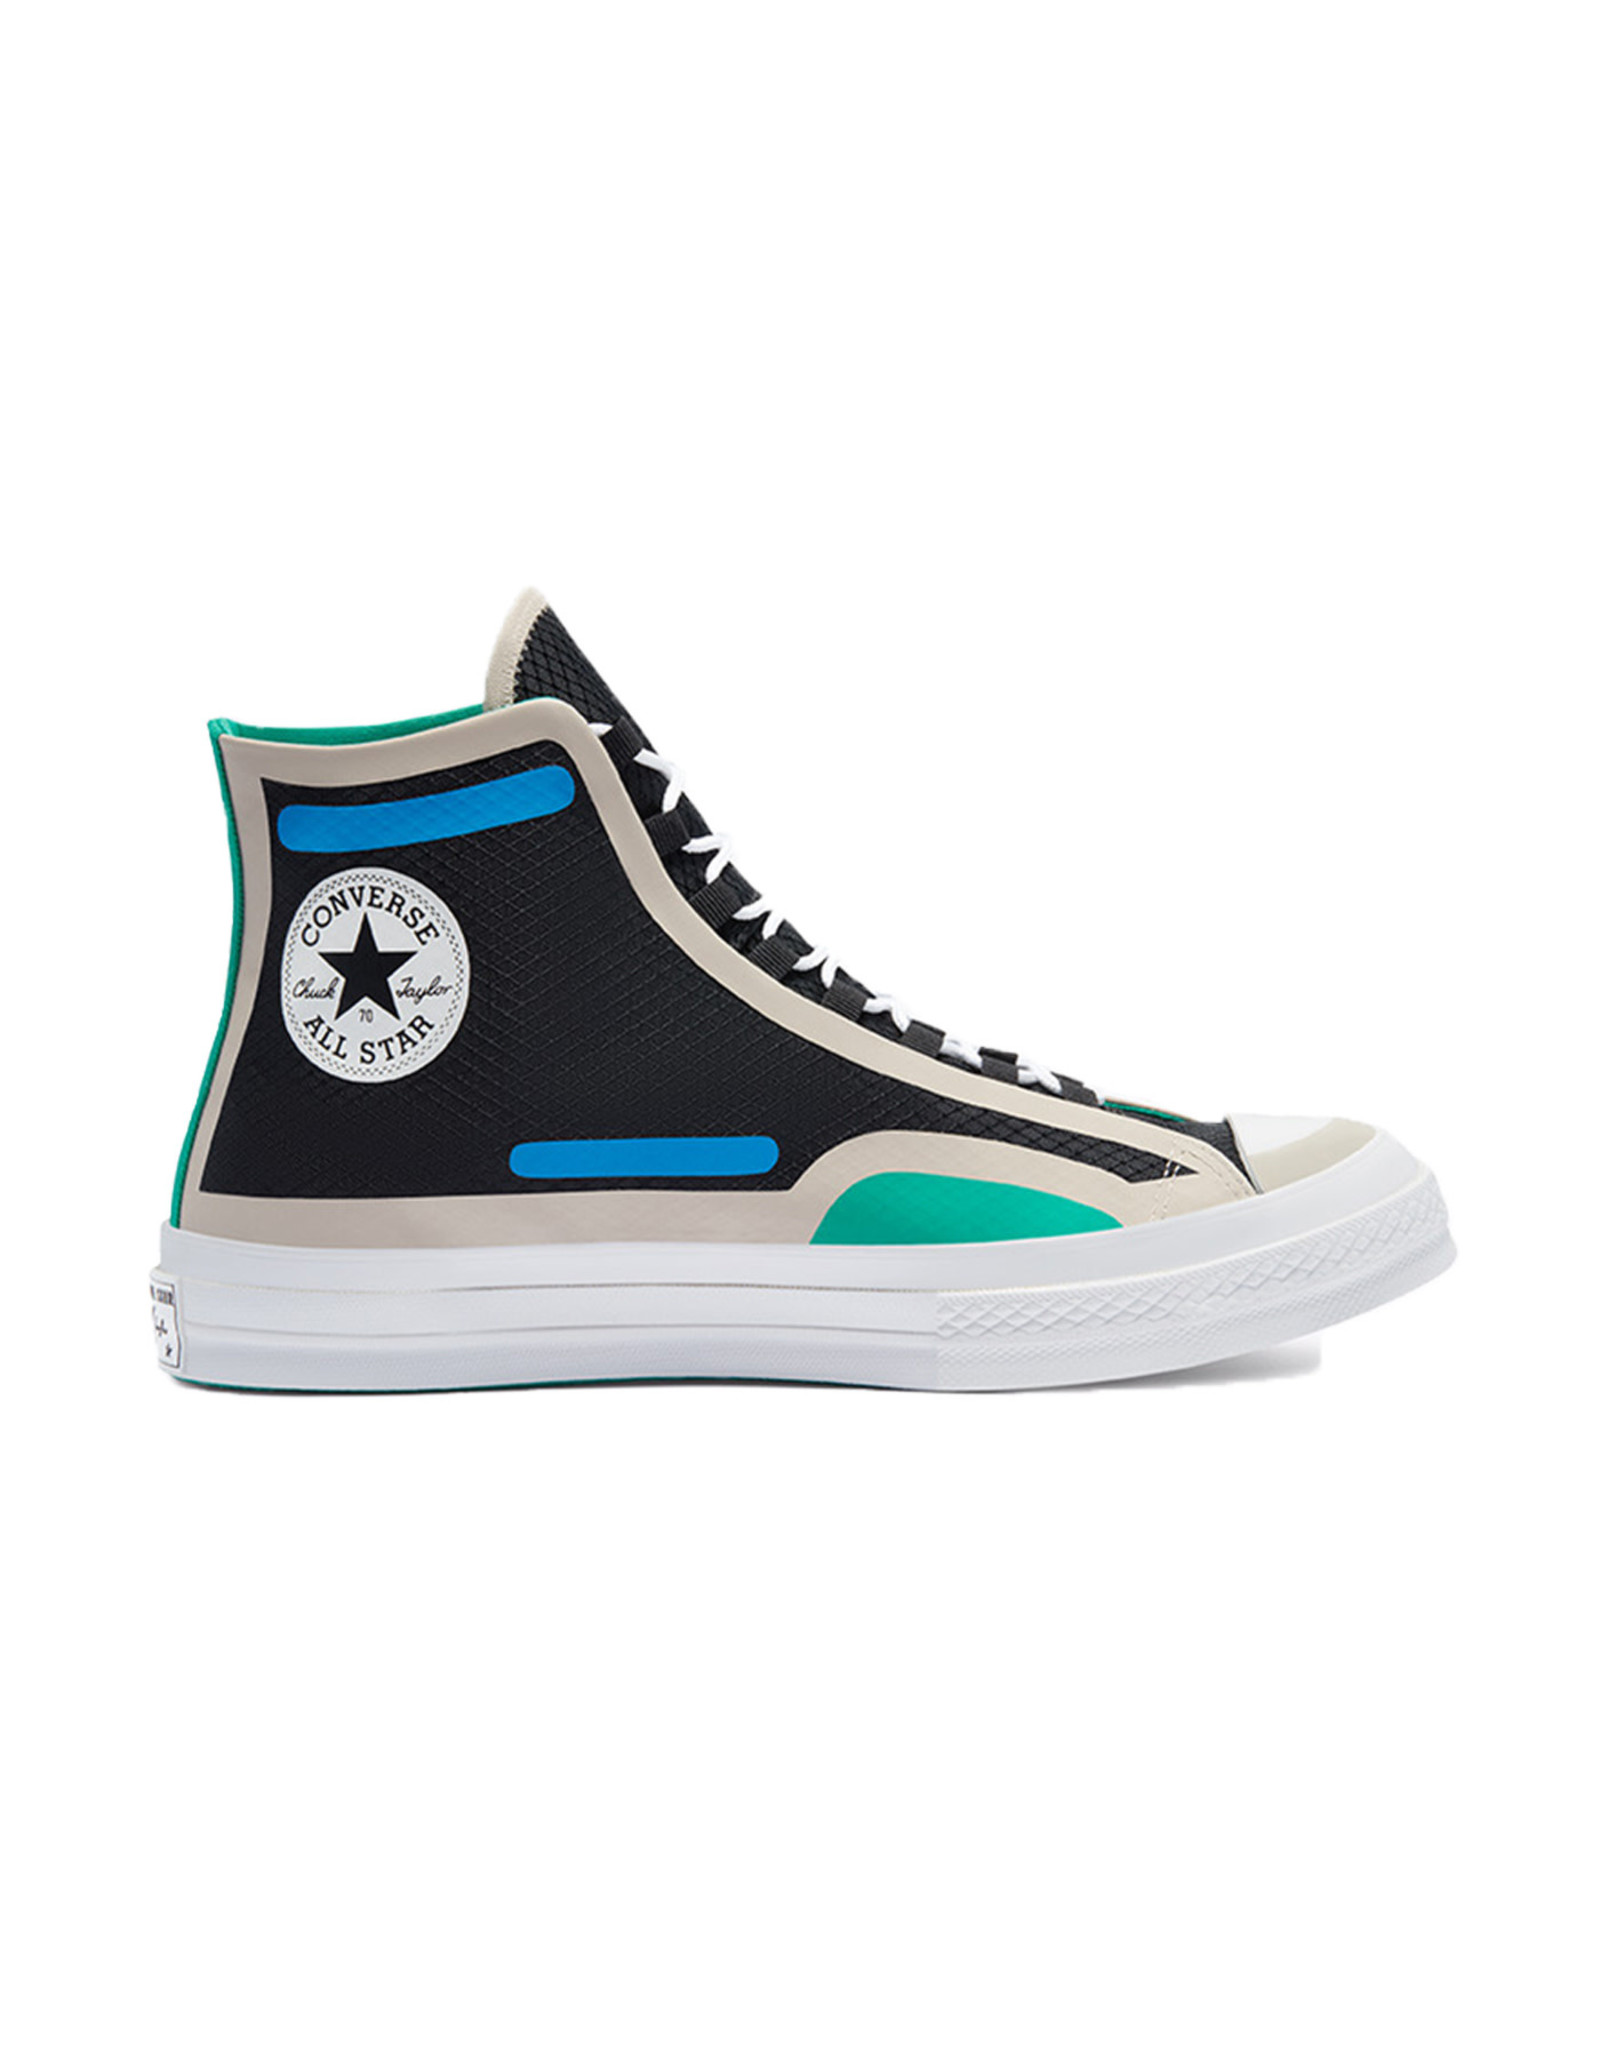 CONVERSE CHUCK 70 - TRAIL HI BLACK/STRING C170BAIL-170140C